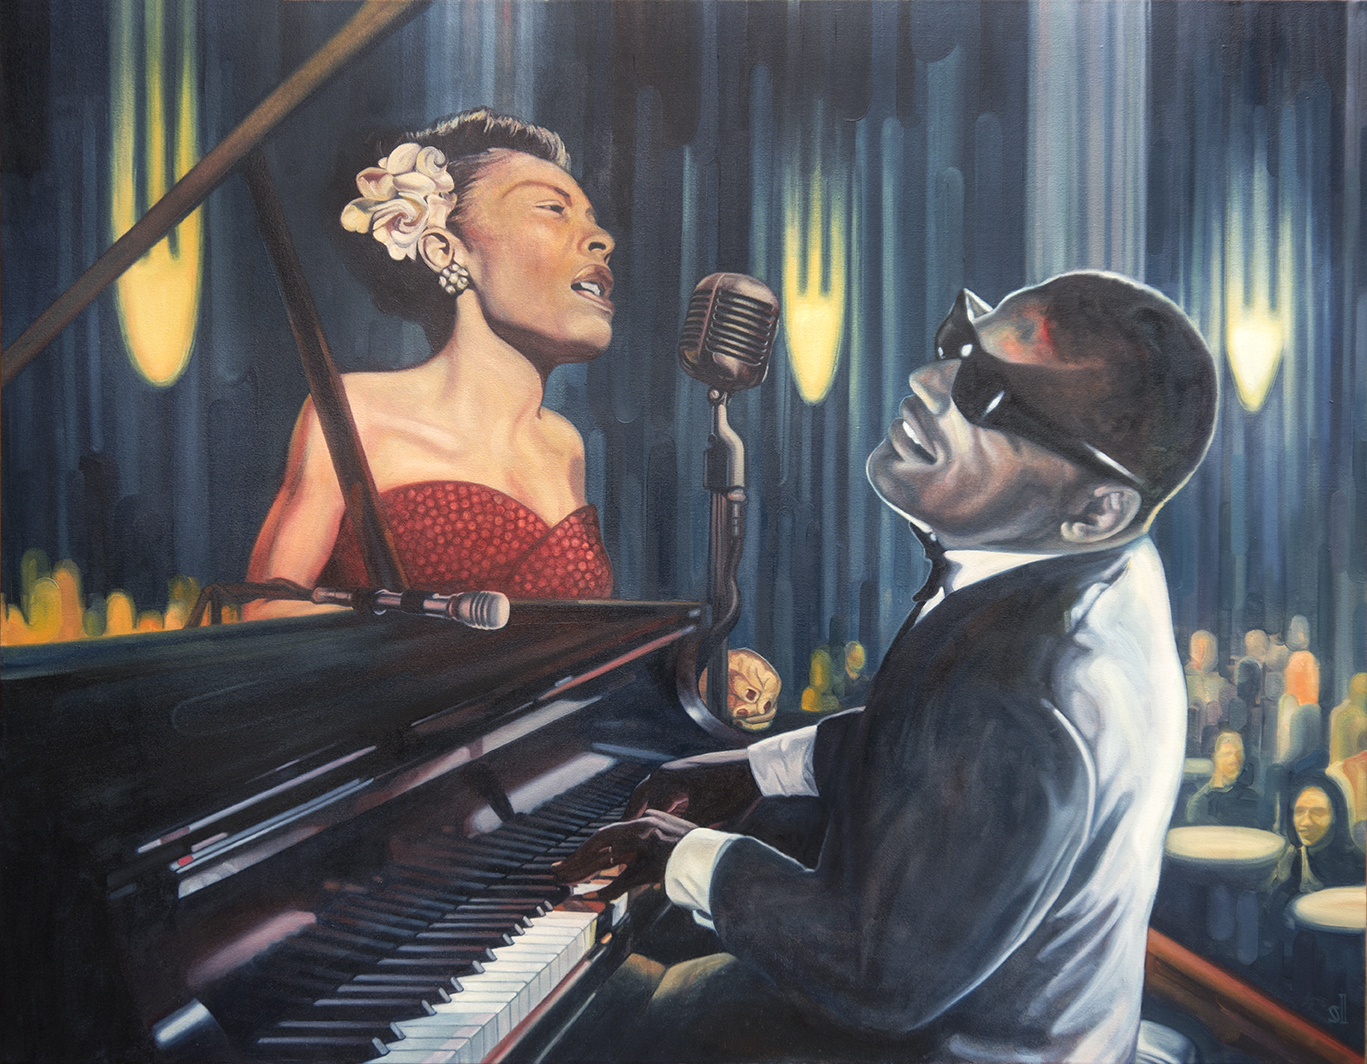 Bille Holiday & Ray Charles / Private commission